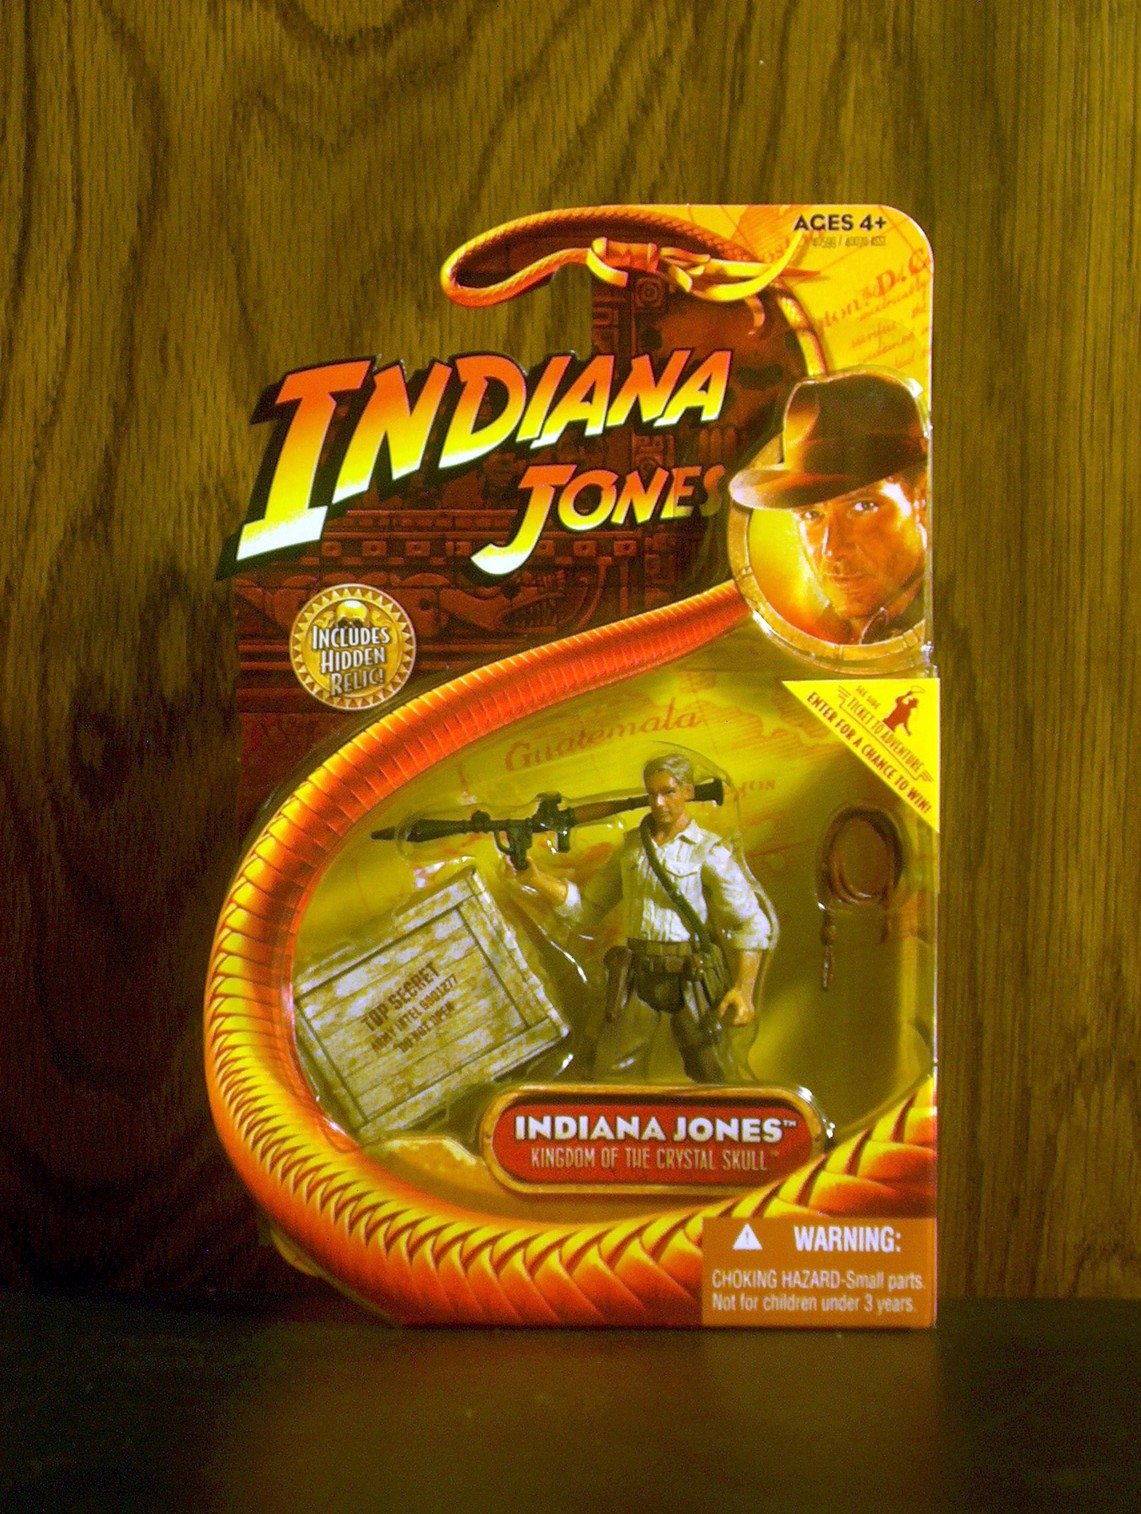 Indiana Jones (with bazooka and whip)